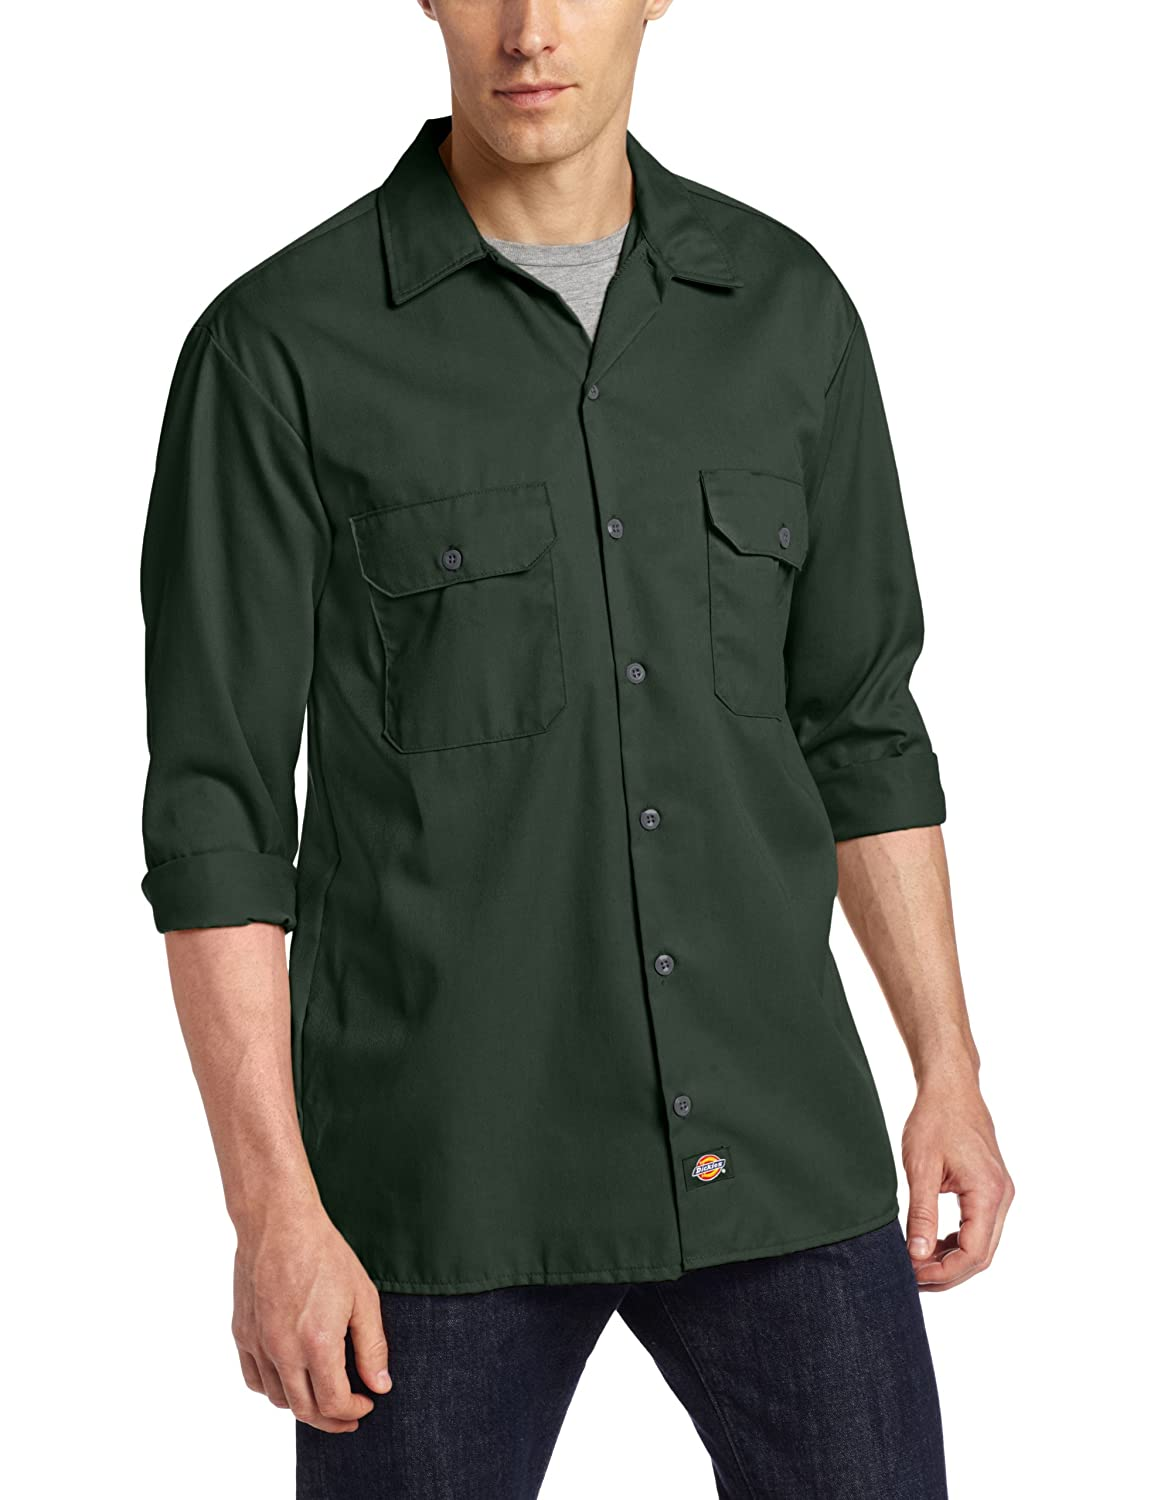 Dickies Men's Long Sleeve Work Shirt 574